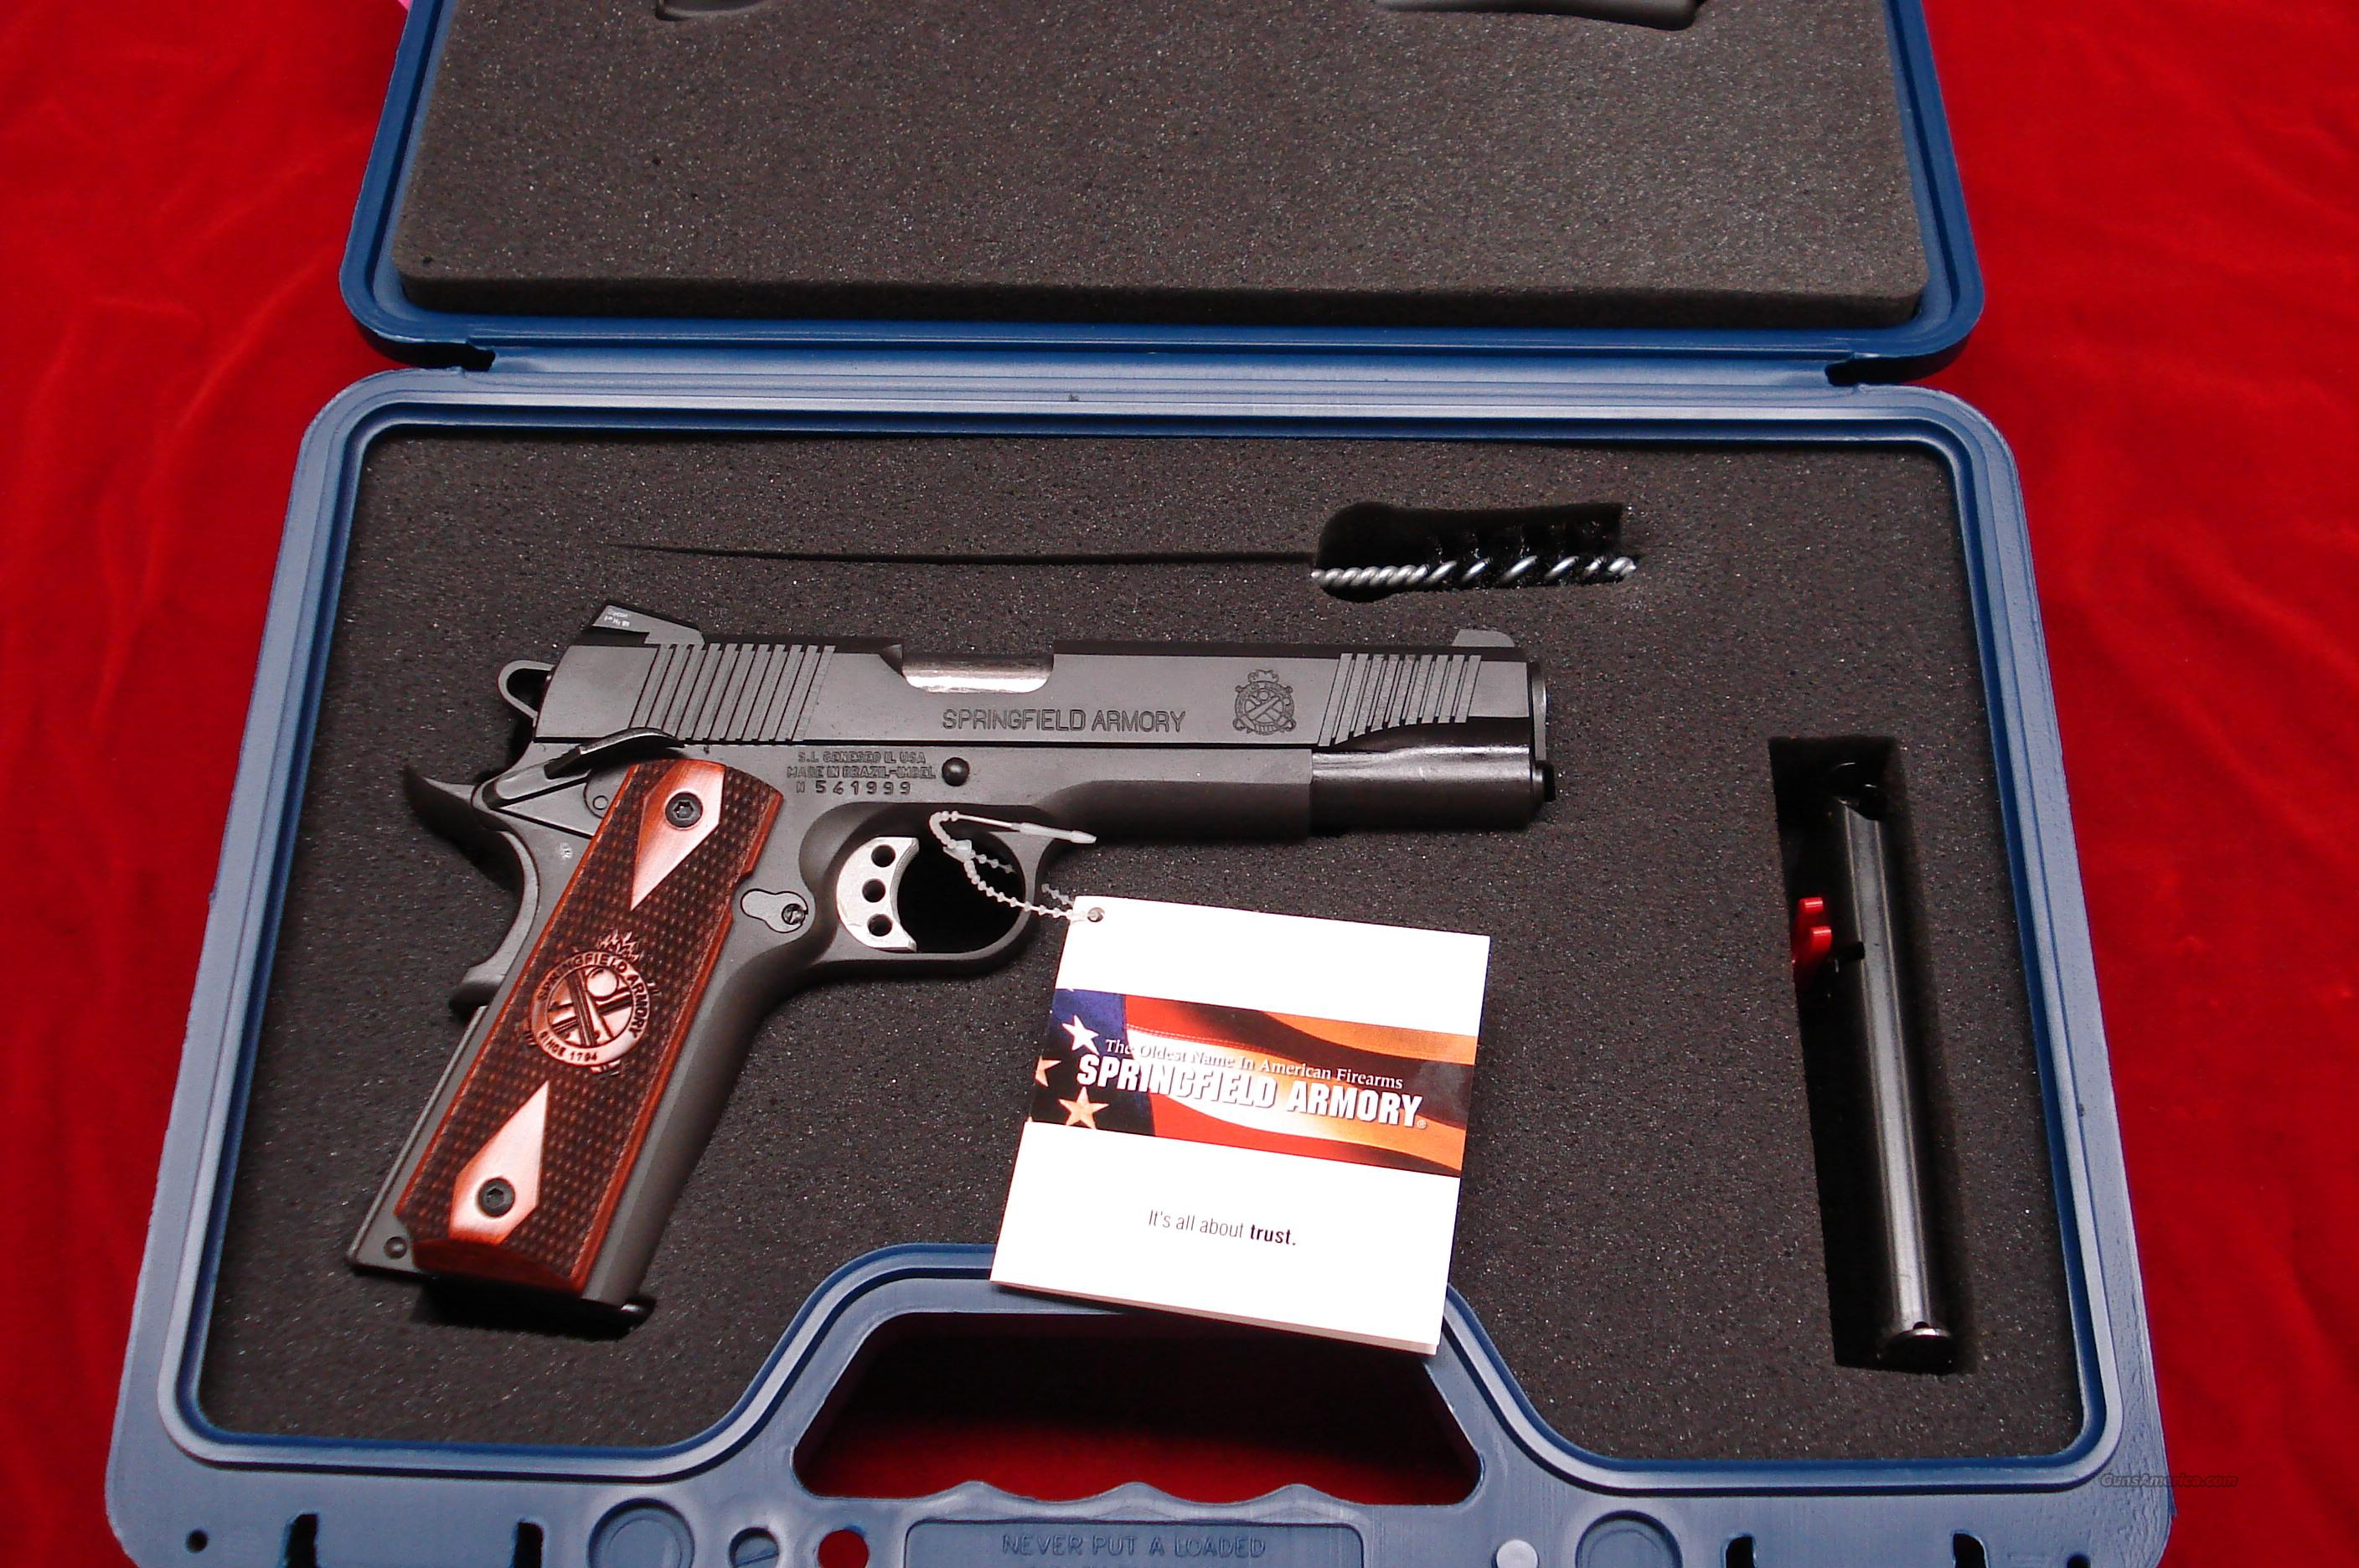 SPRINGFIELD ARMORY 1911 A1 LOADED (PX9109LP) NEW  Guns > Pistols > Springfield Armory Pistols > 1911 Type